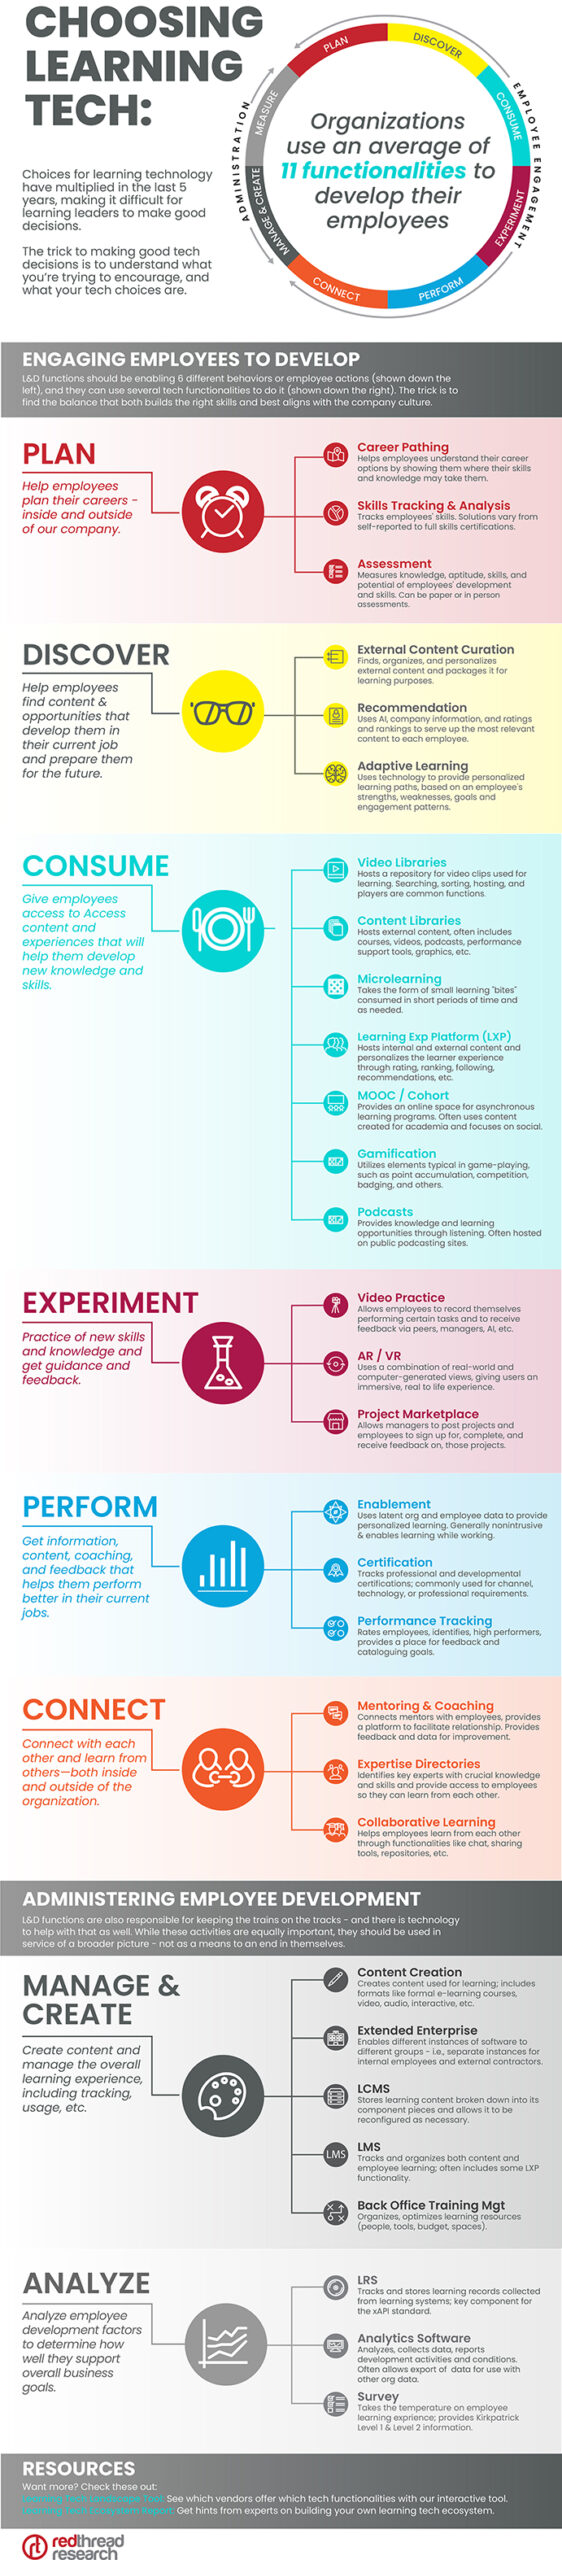 Learning Tool Infographic_2020